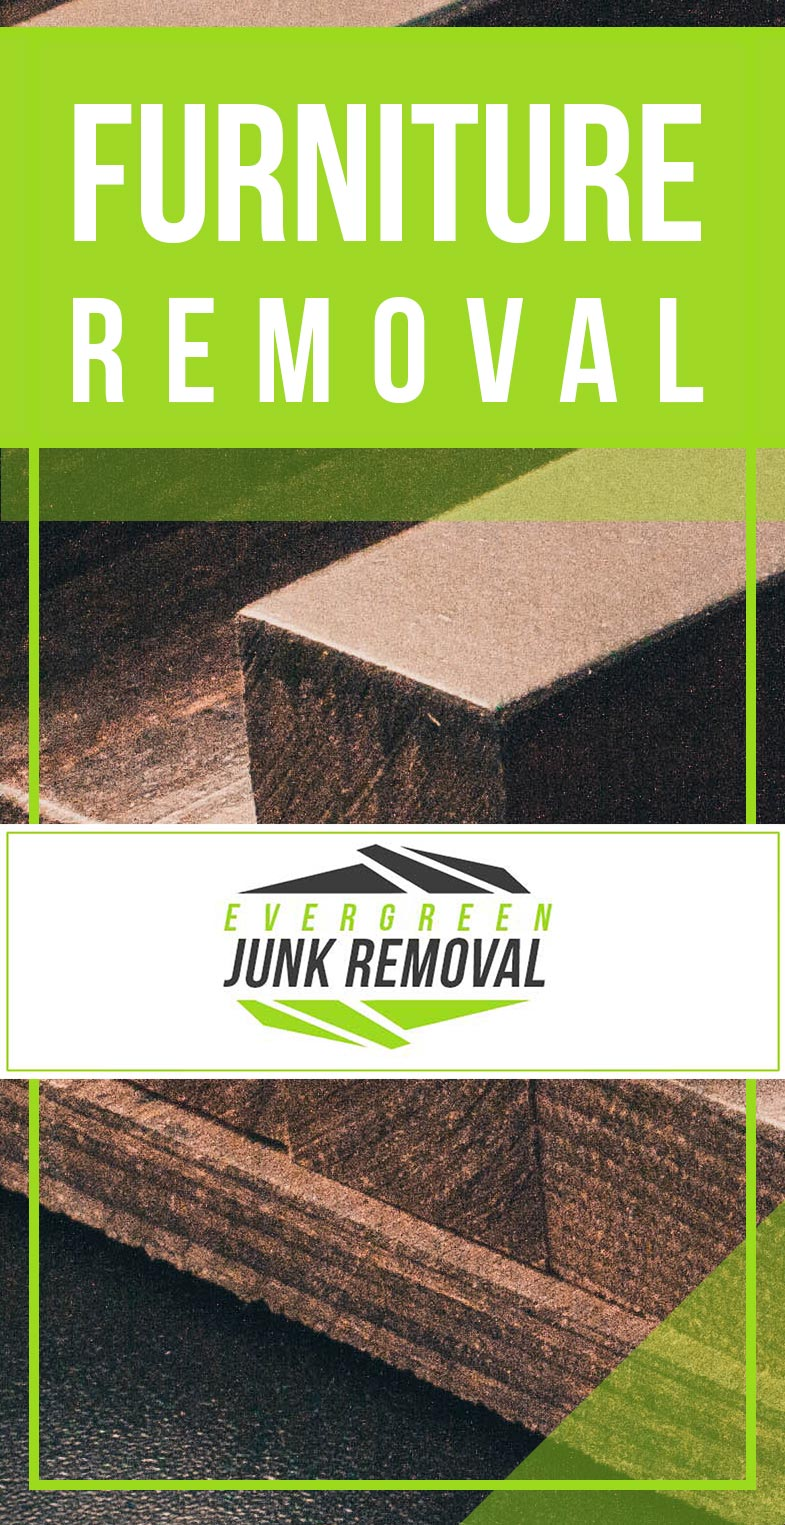 Irving Furniture Removal